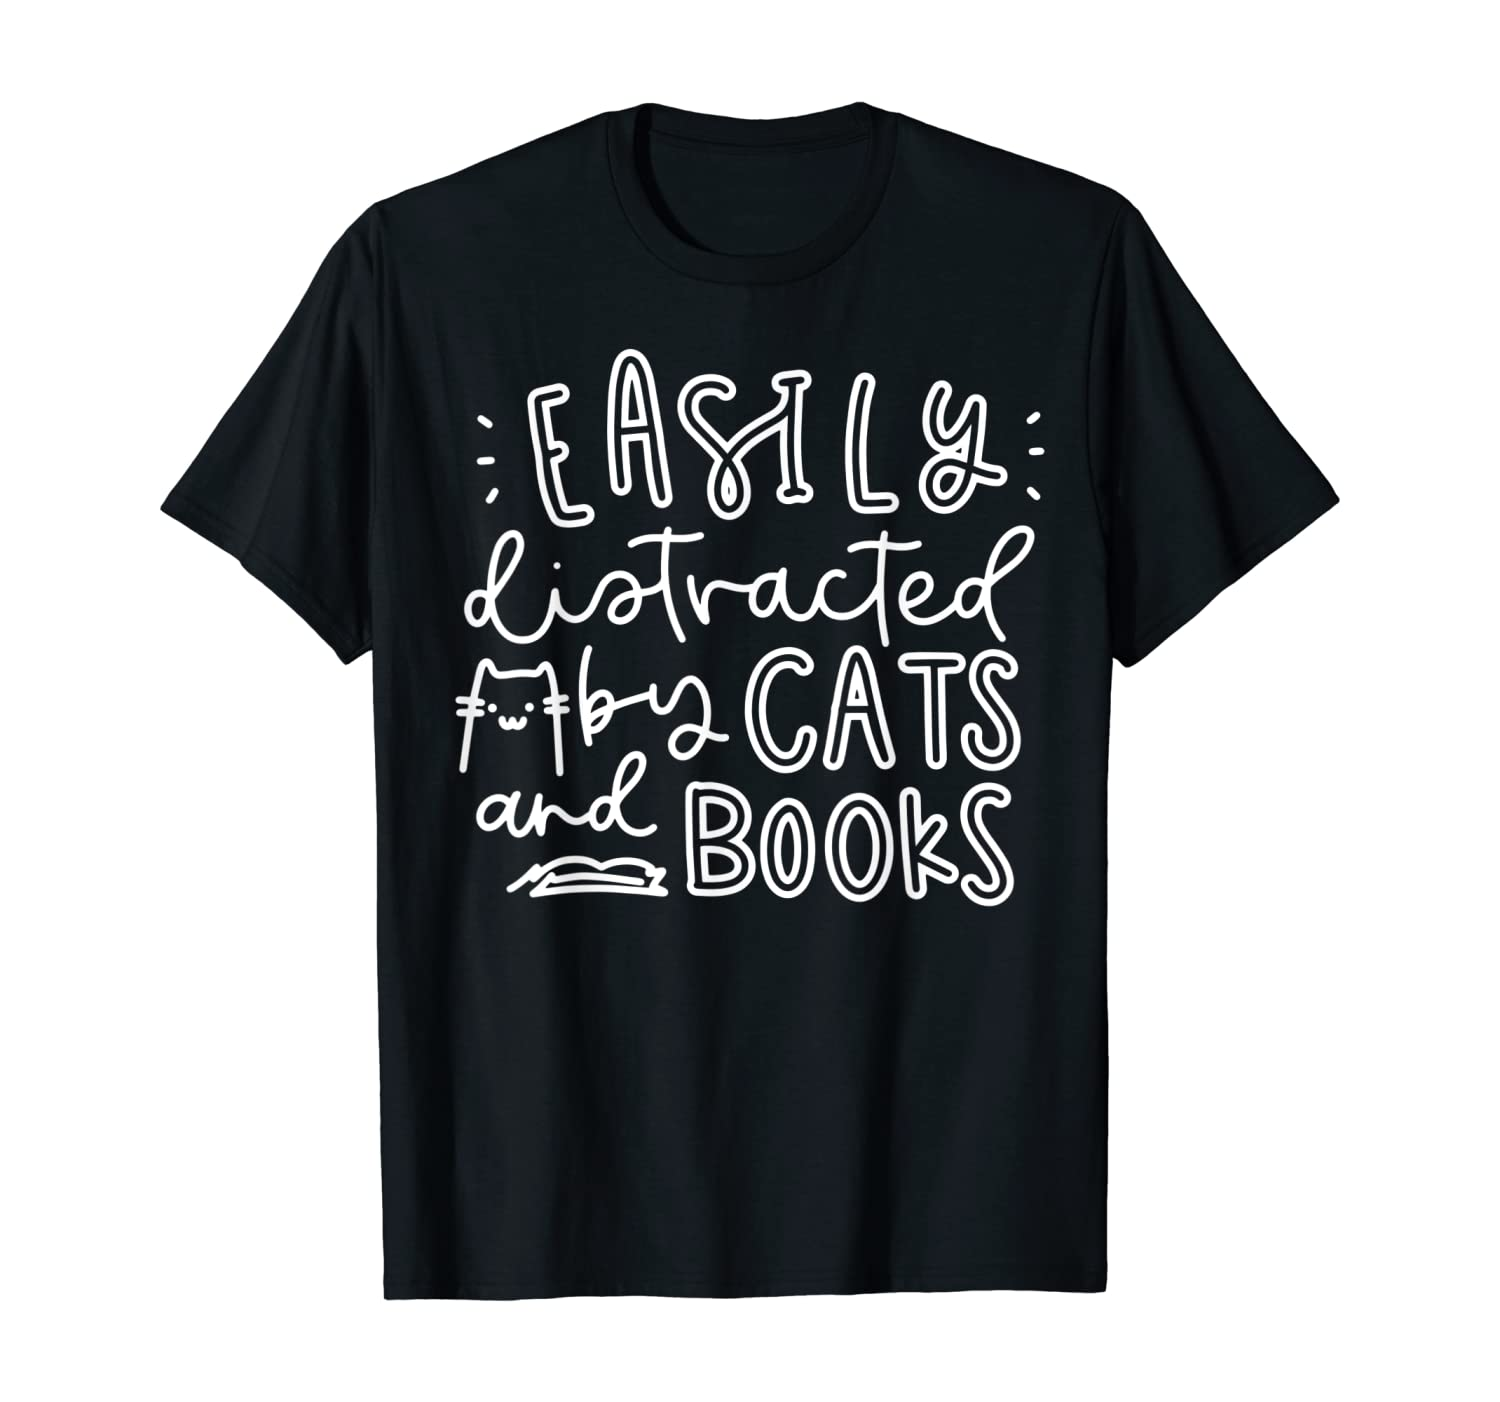 Easily Distracted Cats And Books Funny Gift For Cat Lovers T-Shirt